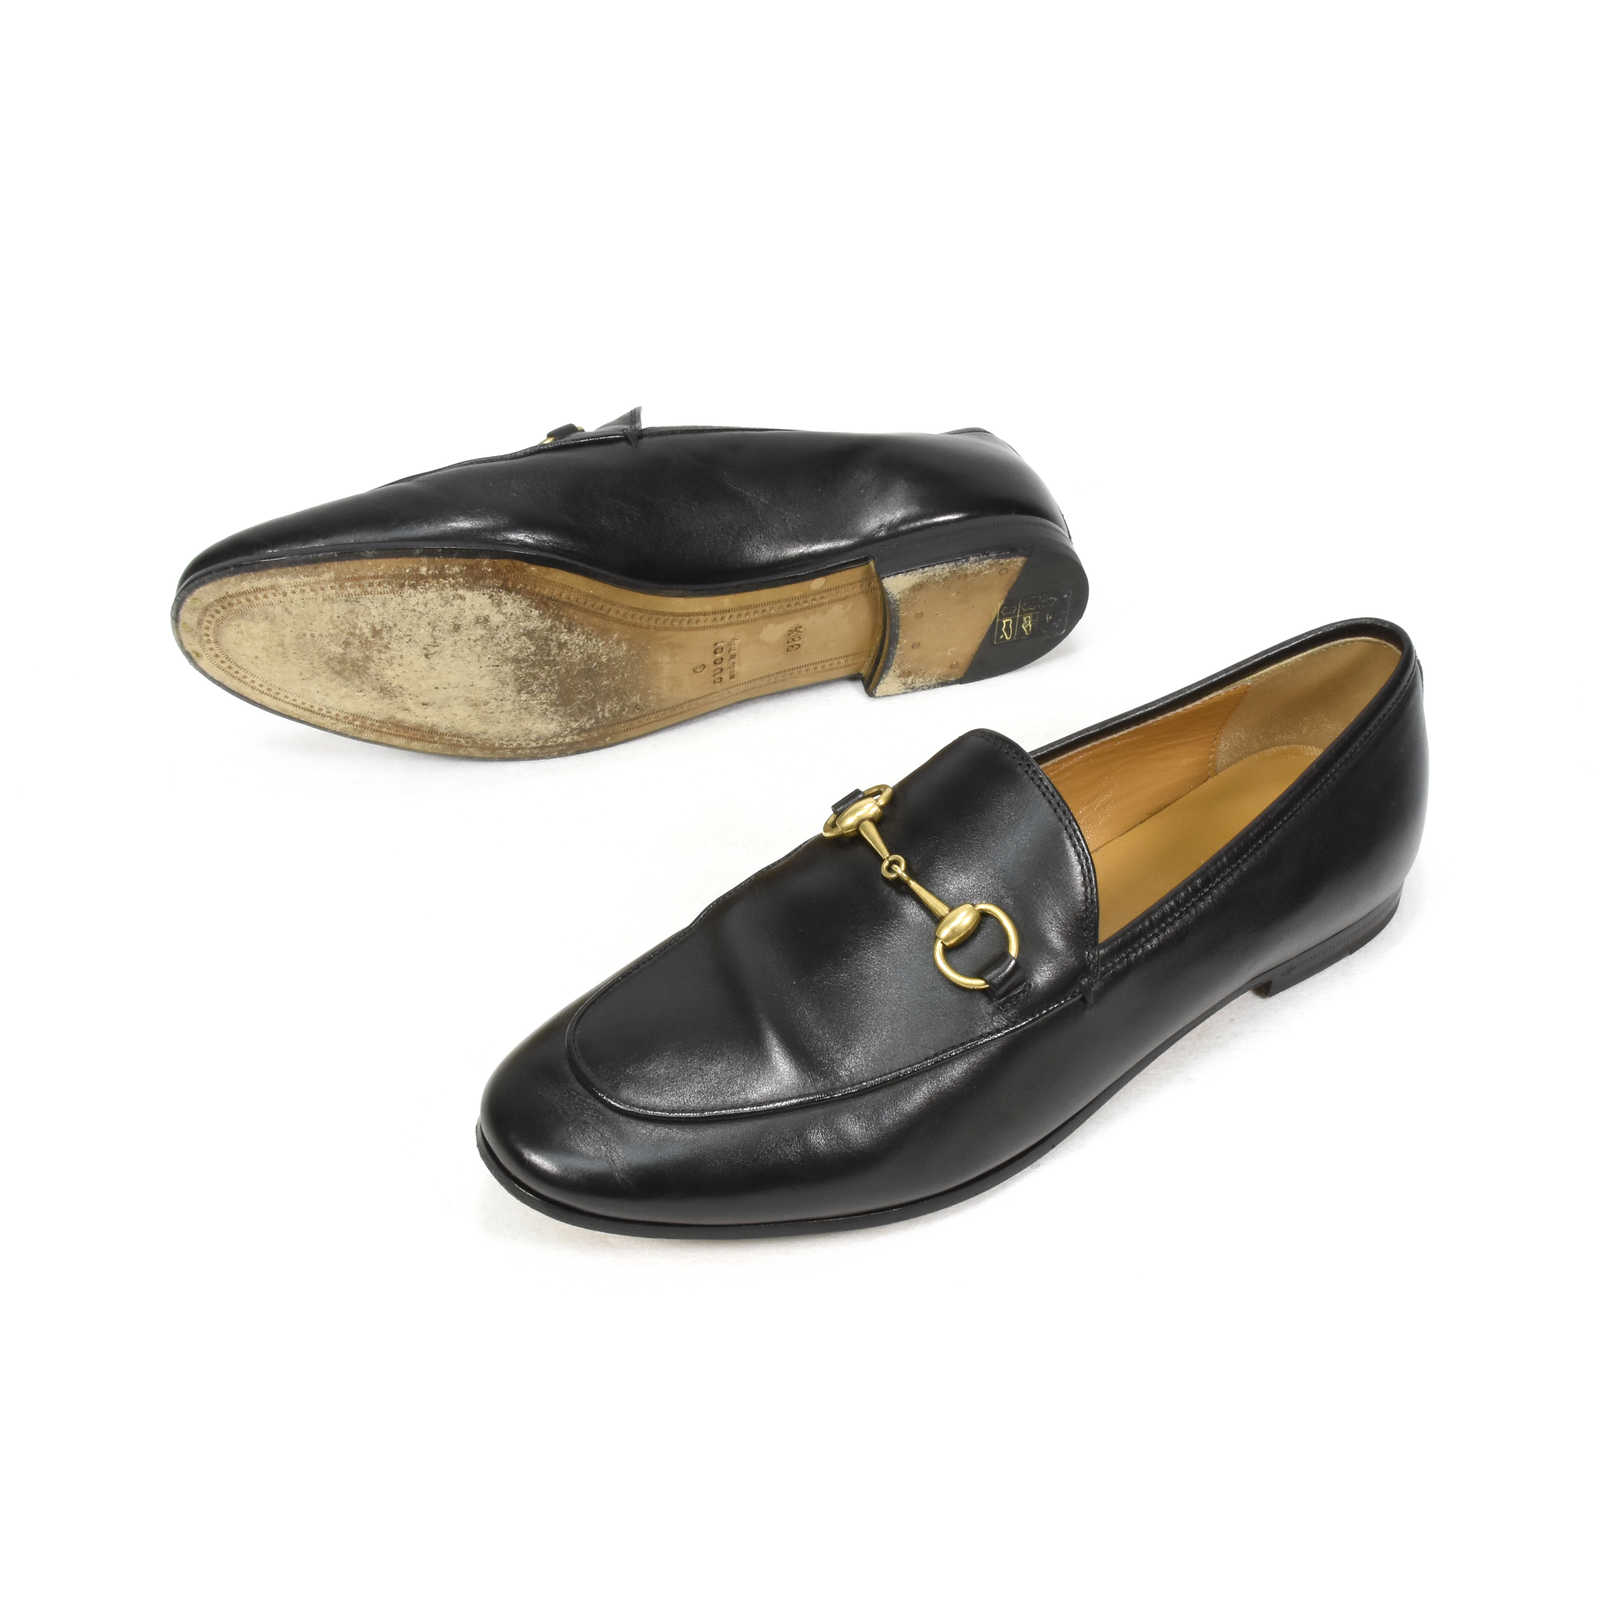 fec9147d21c9 ... Authentic Second Hand Gucci Jordaan Loafer (PSS-051-00183) - Thumbnail  1 ...